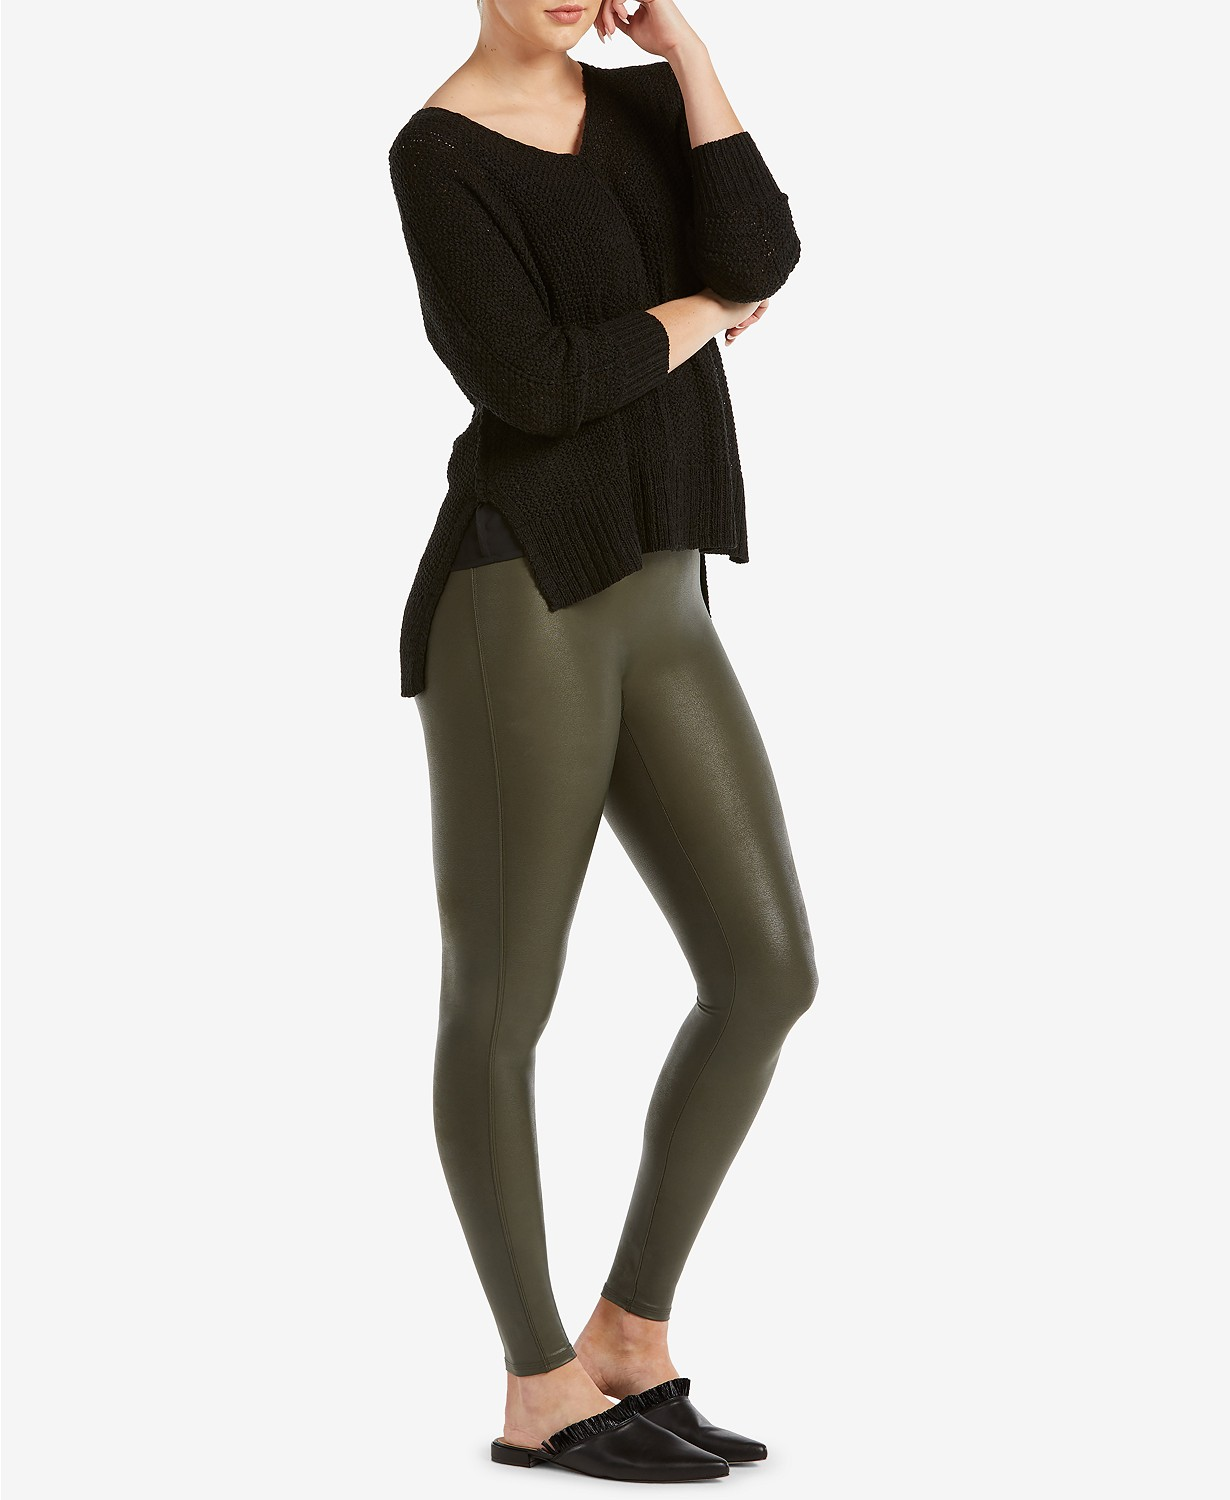 438253f4dccbc Spanx Faux Leather Leggings Everyone Is Obsessed With Are on Sale